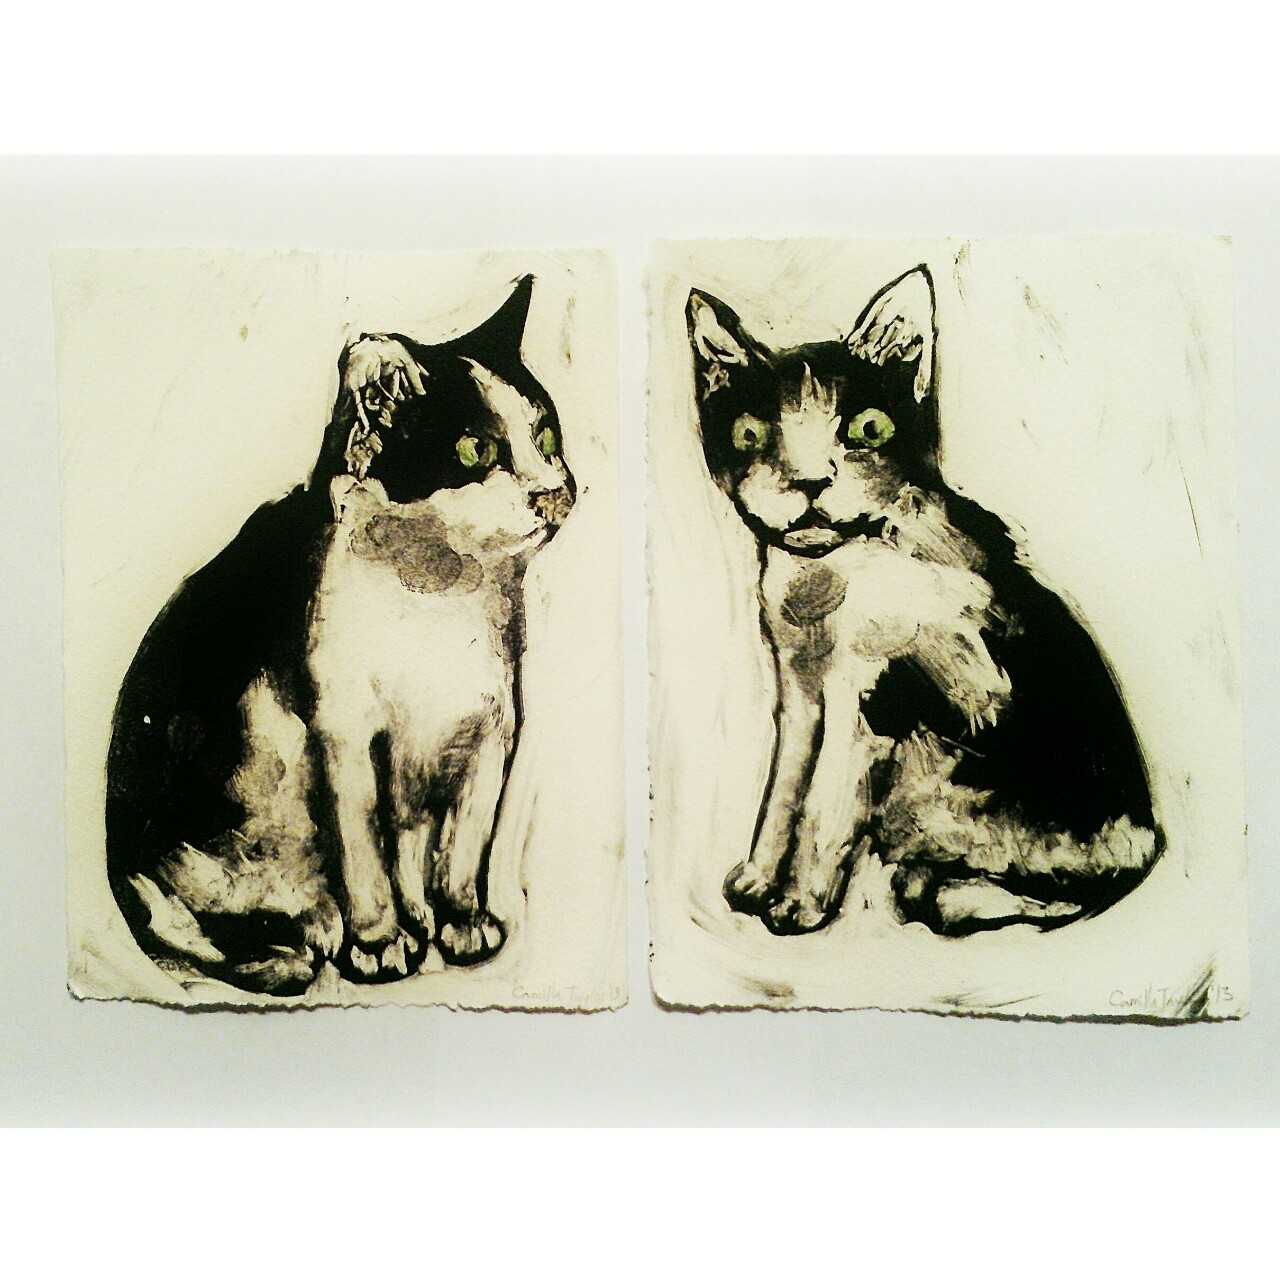 Monoprints of my neighbor's cats, Yuki and Angel, made using the reductive technique as part of a teaching demo.